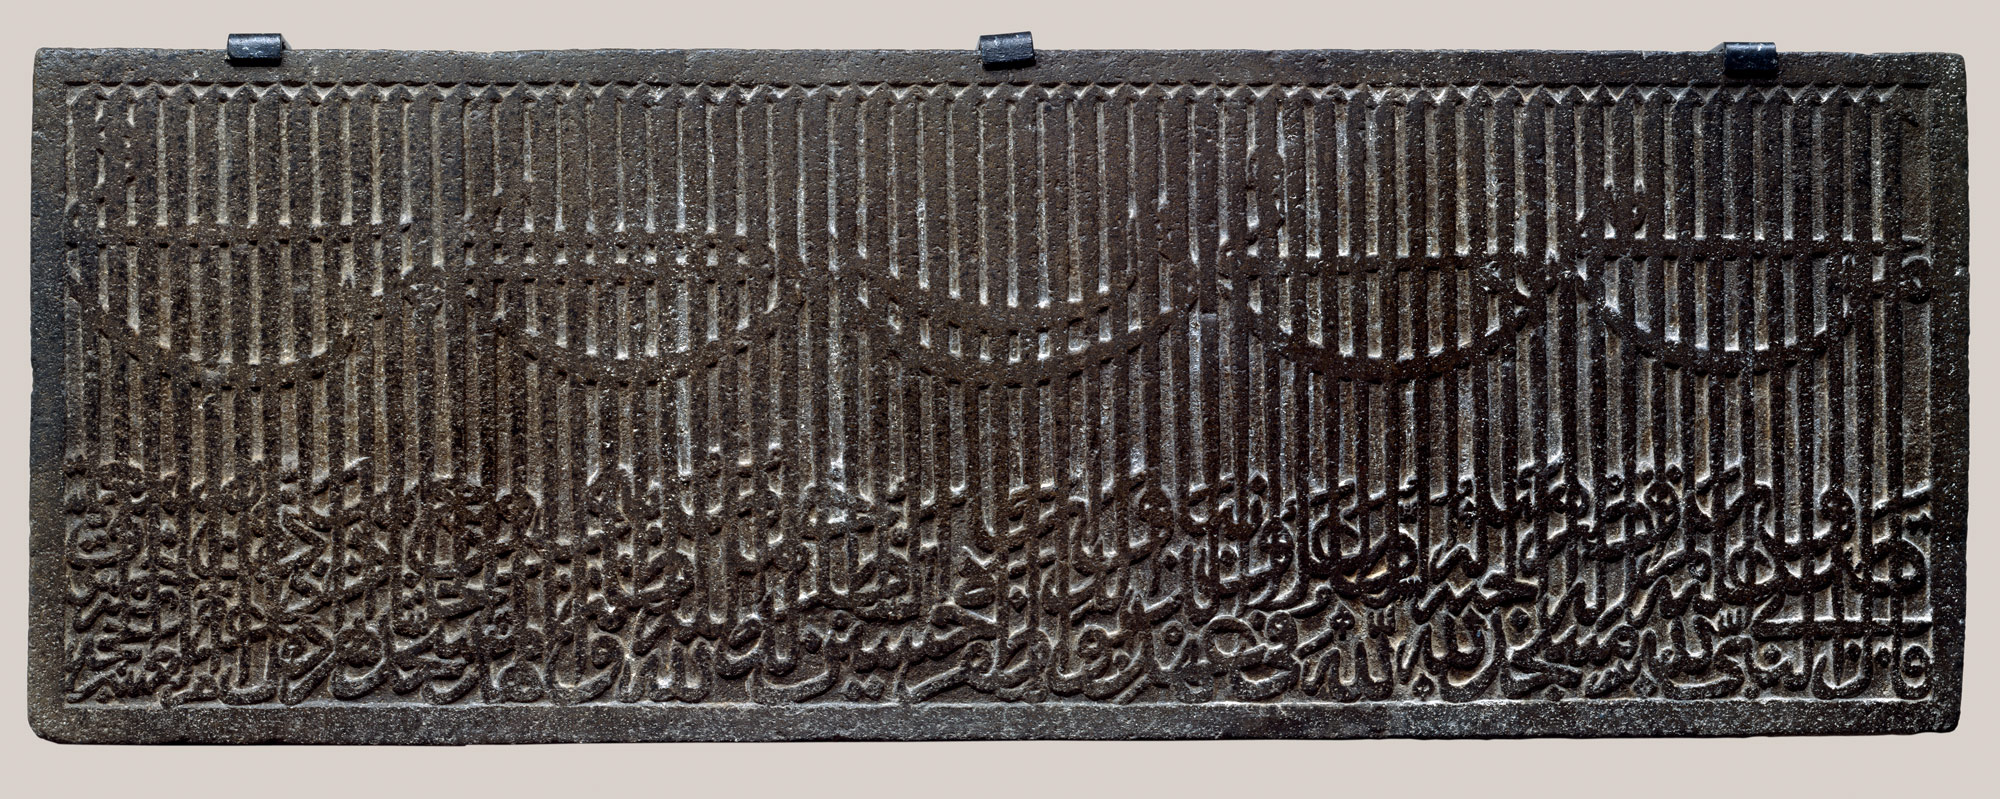 Dedicatory inscription from a mosque